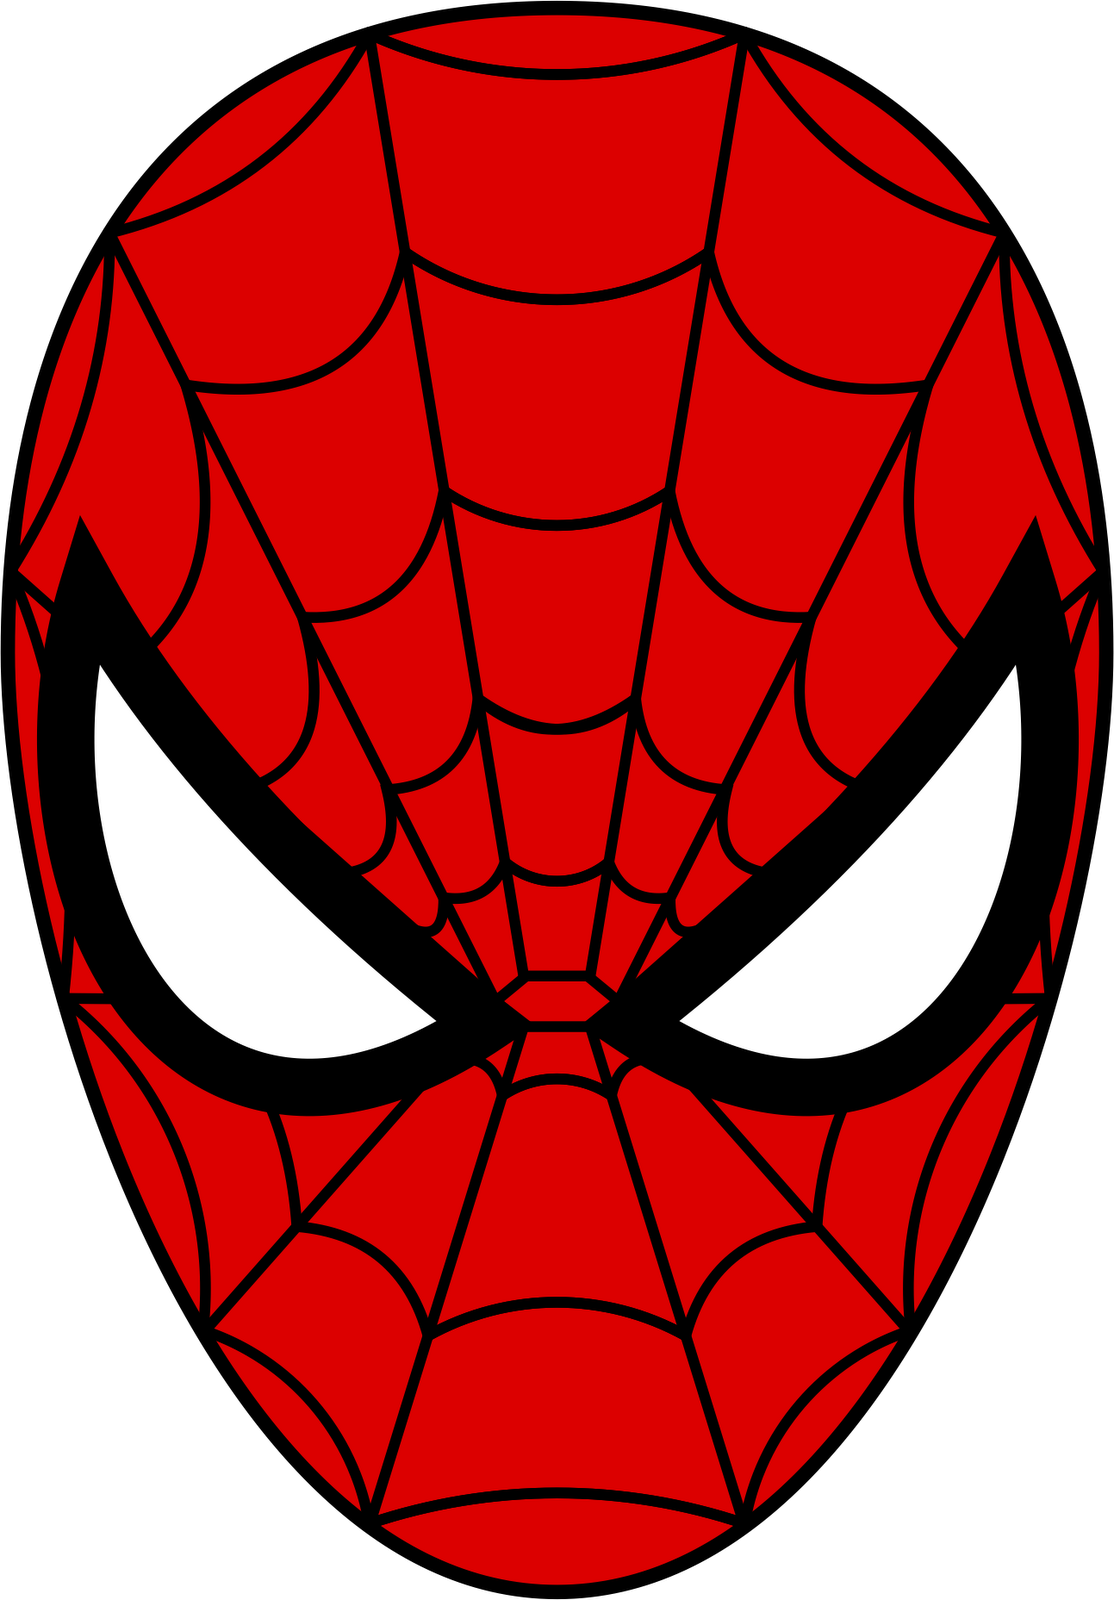 pin by andrea jacobsen on michael 4 bday pinterest amazing rh pinterest co uk  spider man homecoming face logo